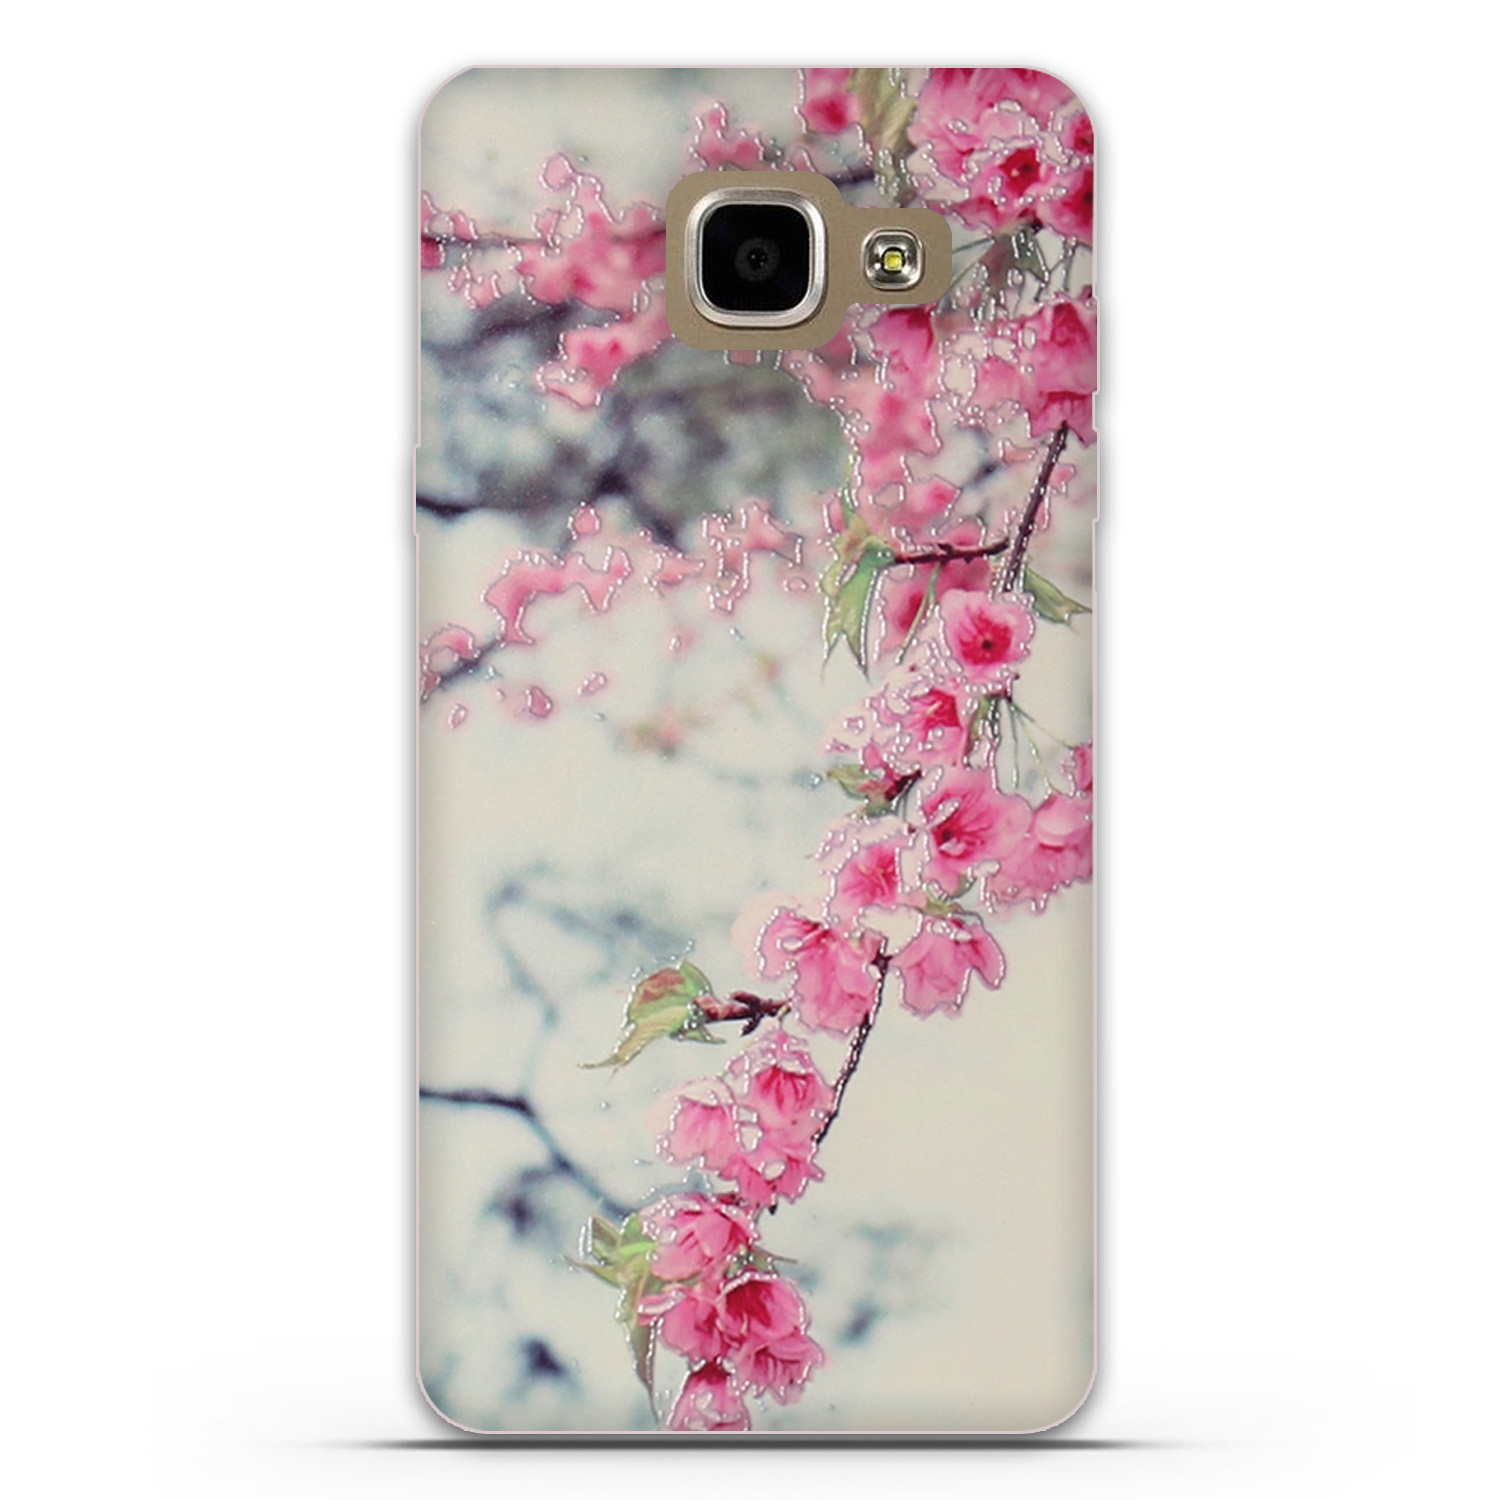 For Samsung Galaxy A7 2016 Case Covers 3D Stereo Relief Painting Back Cover for Samsung A7 A710 A710F Silicon Mobile Phone Cases